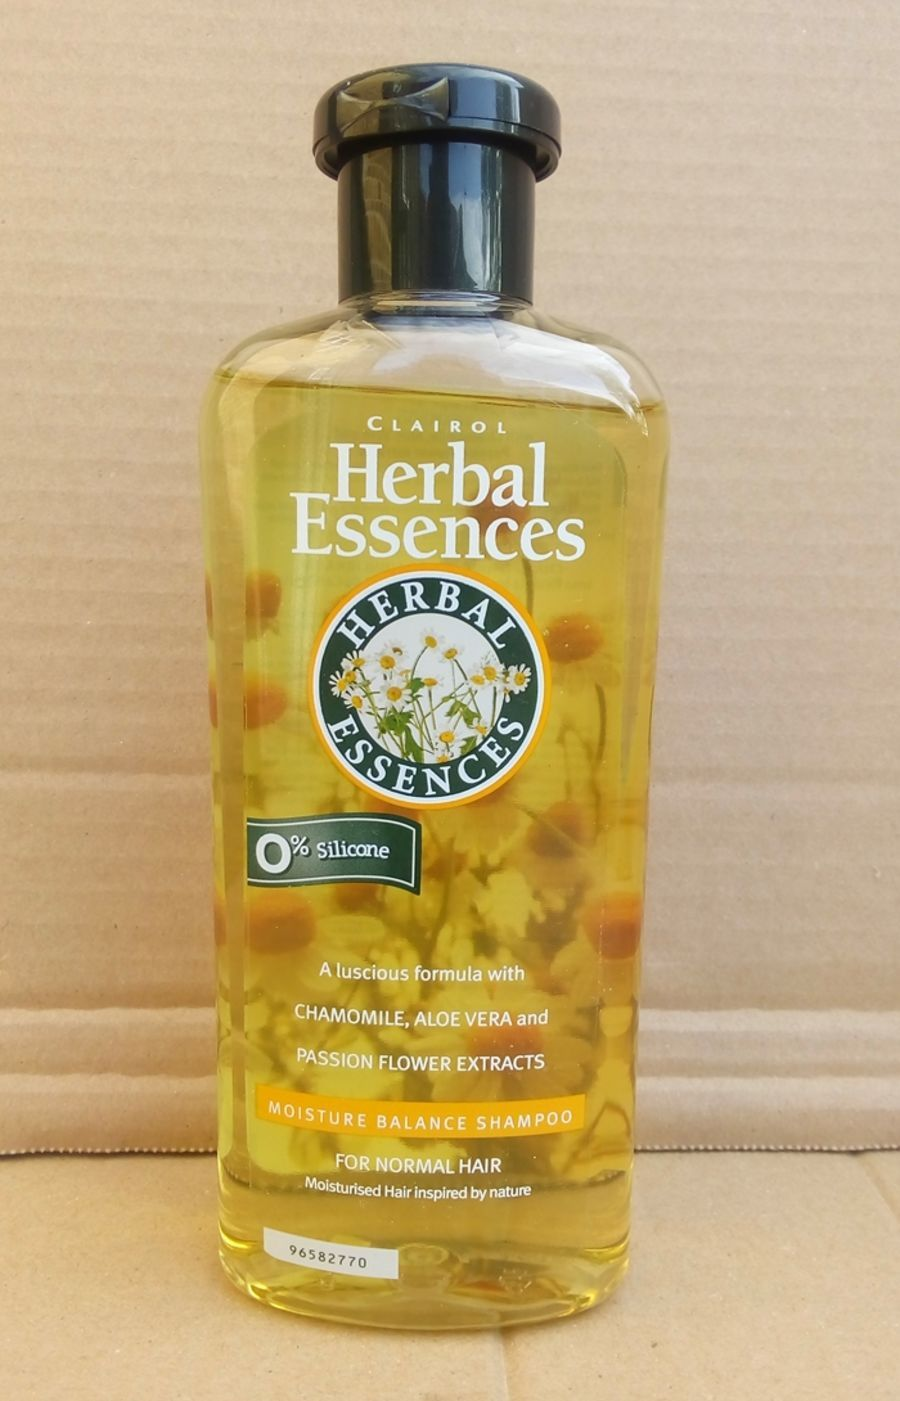 Dr Scholl Lima Callosite Reduction Herbal Essences